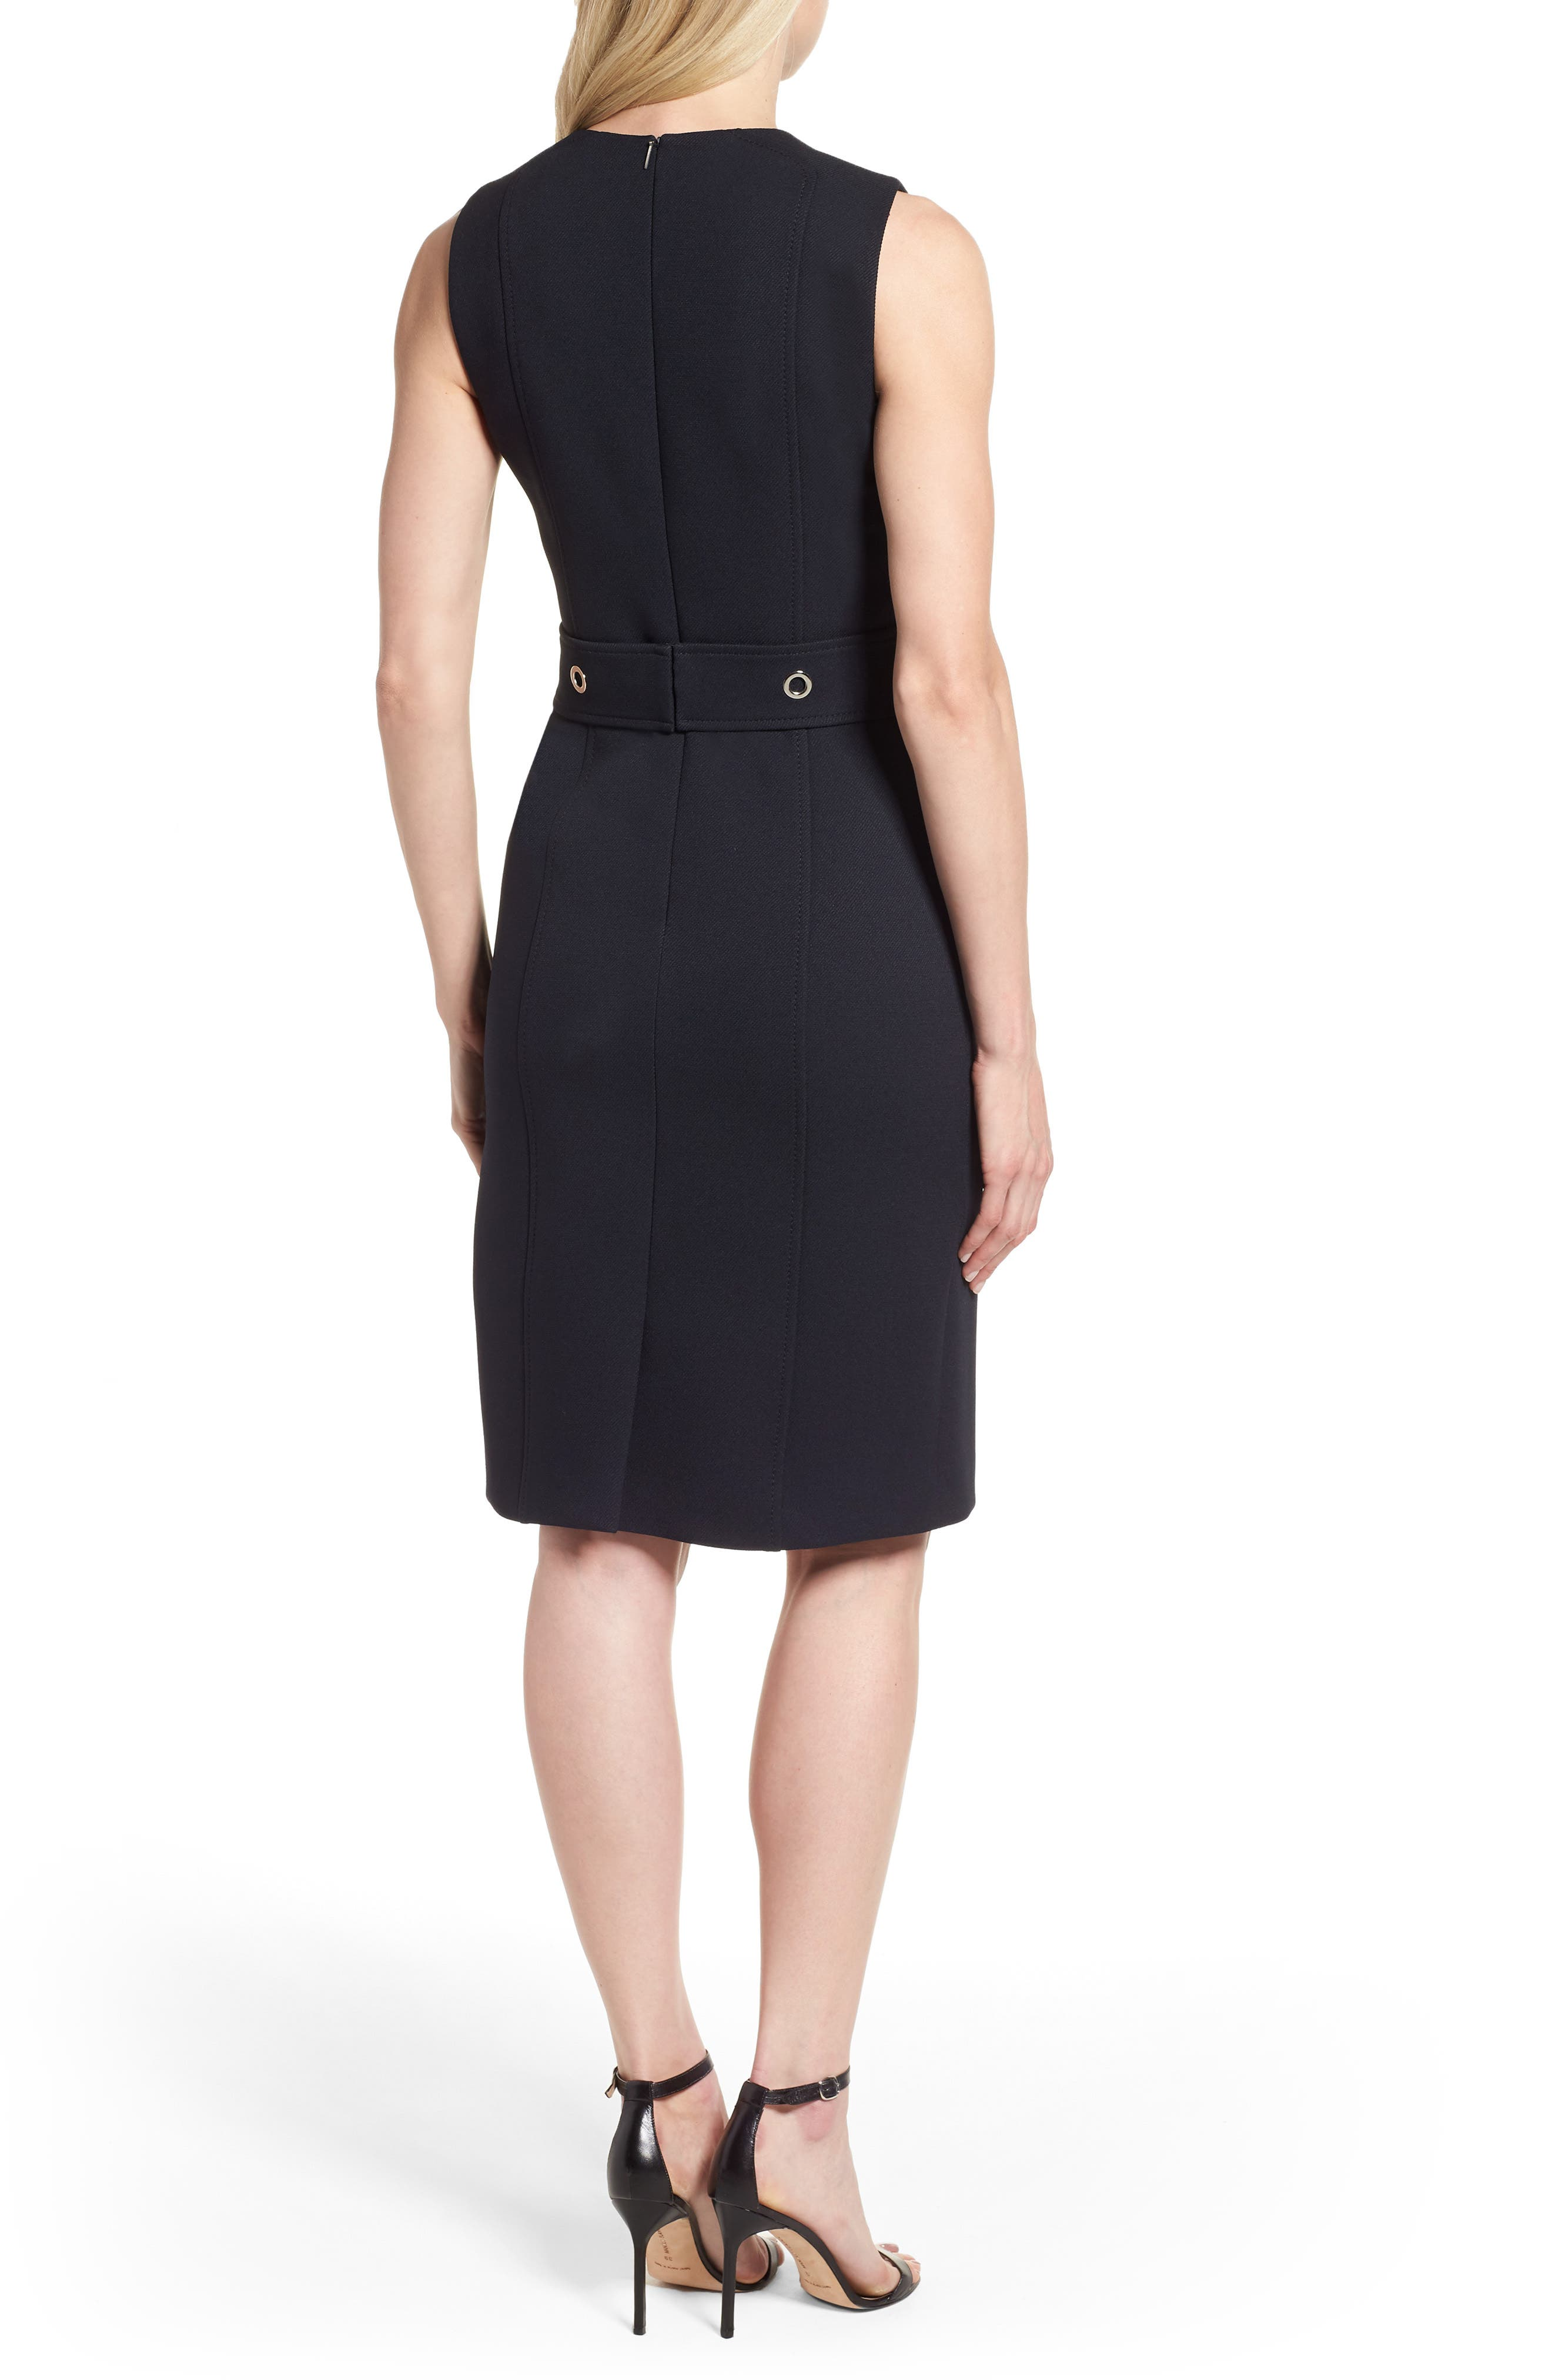 Duleama Belted Sheath Dress,                             Alternate thumbnail 2, color,